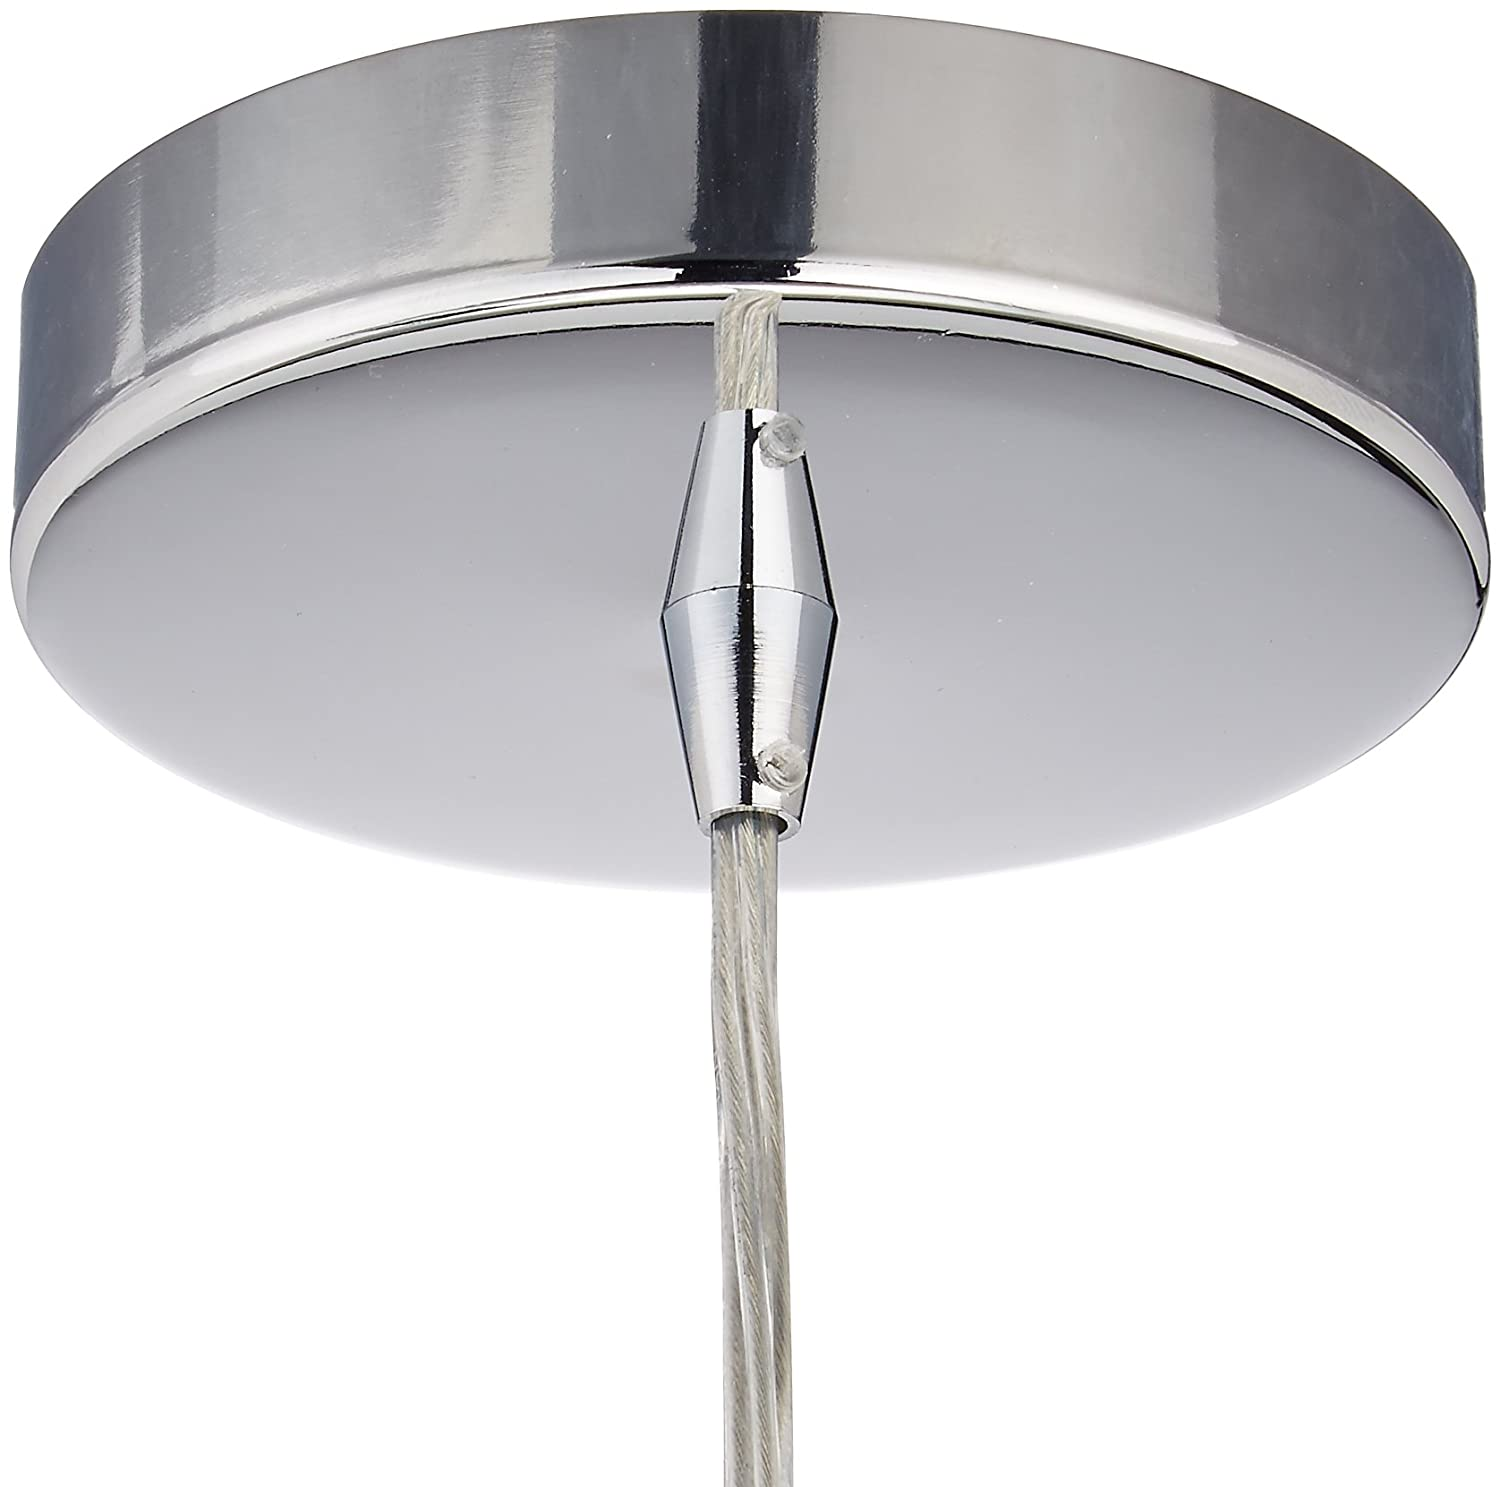 elk 313381vinw twister 1light pendant with vine wrap glass shade 5 by 10 inch polished chrome finish ceiling pendant fixtures amazoncom